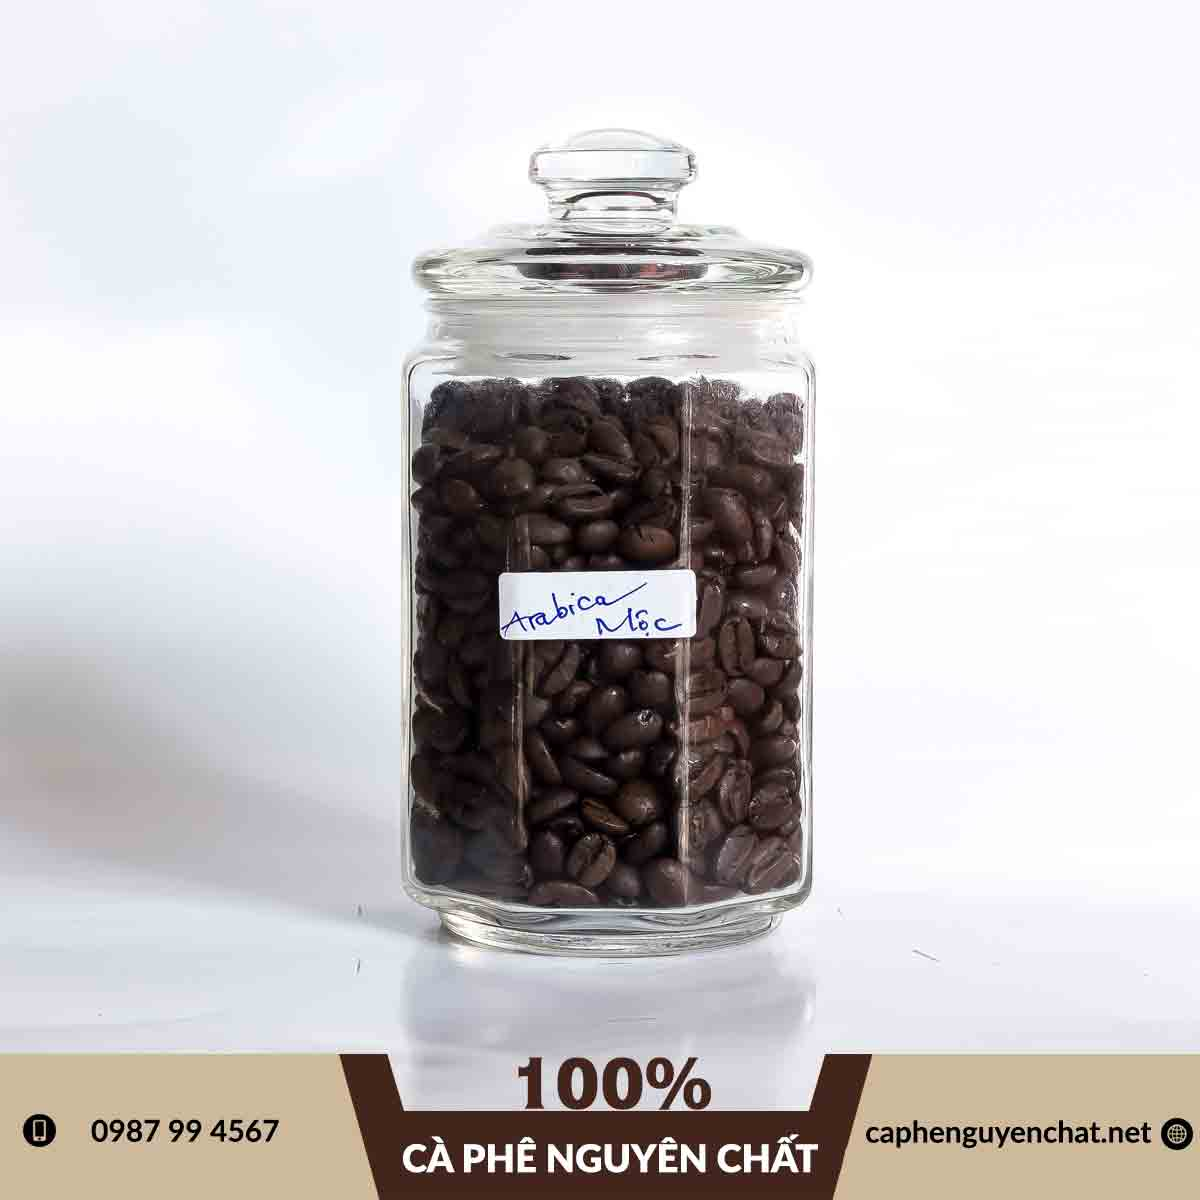 arabica-moc-so-3